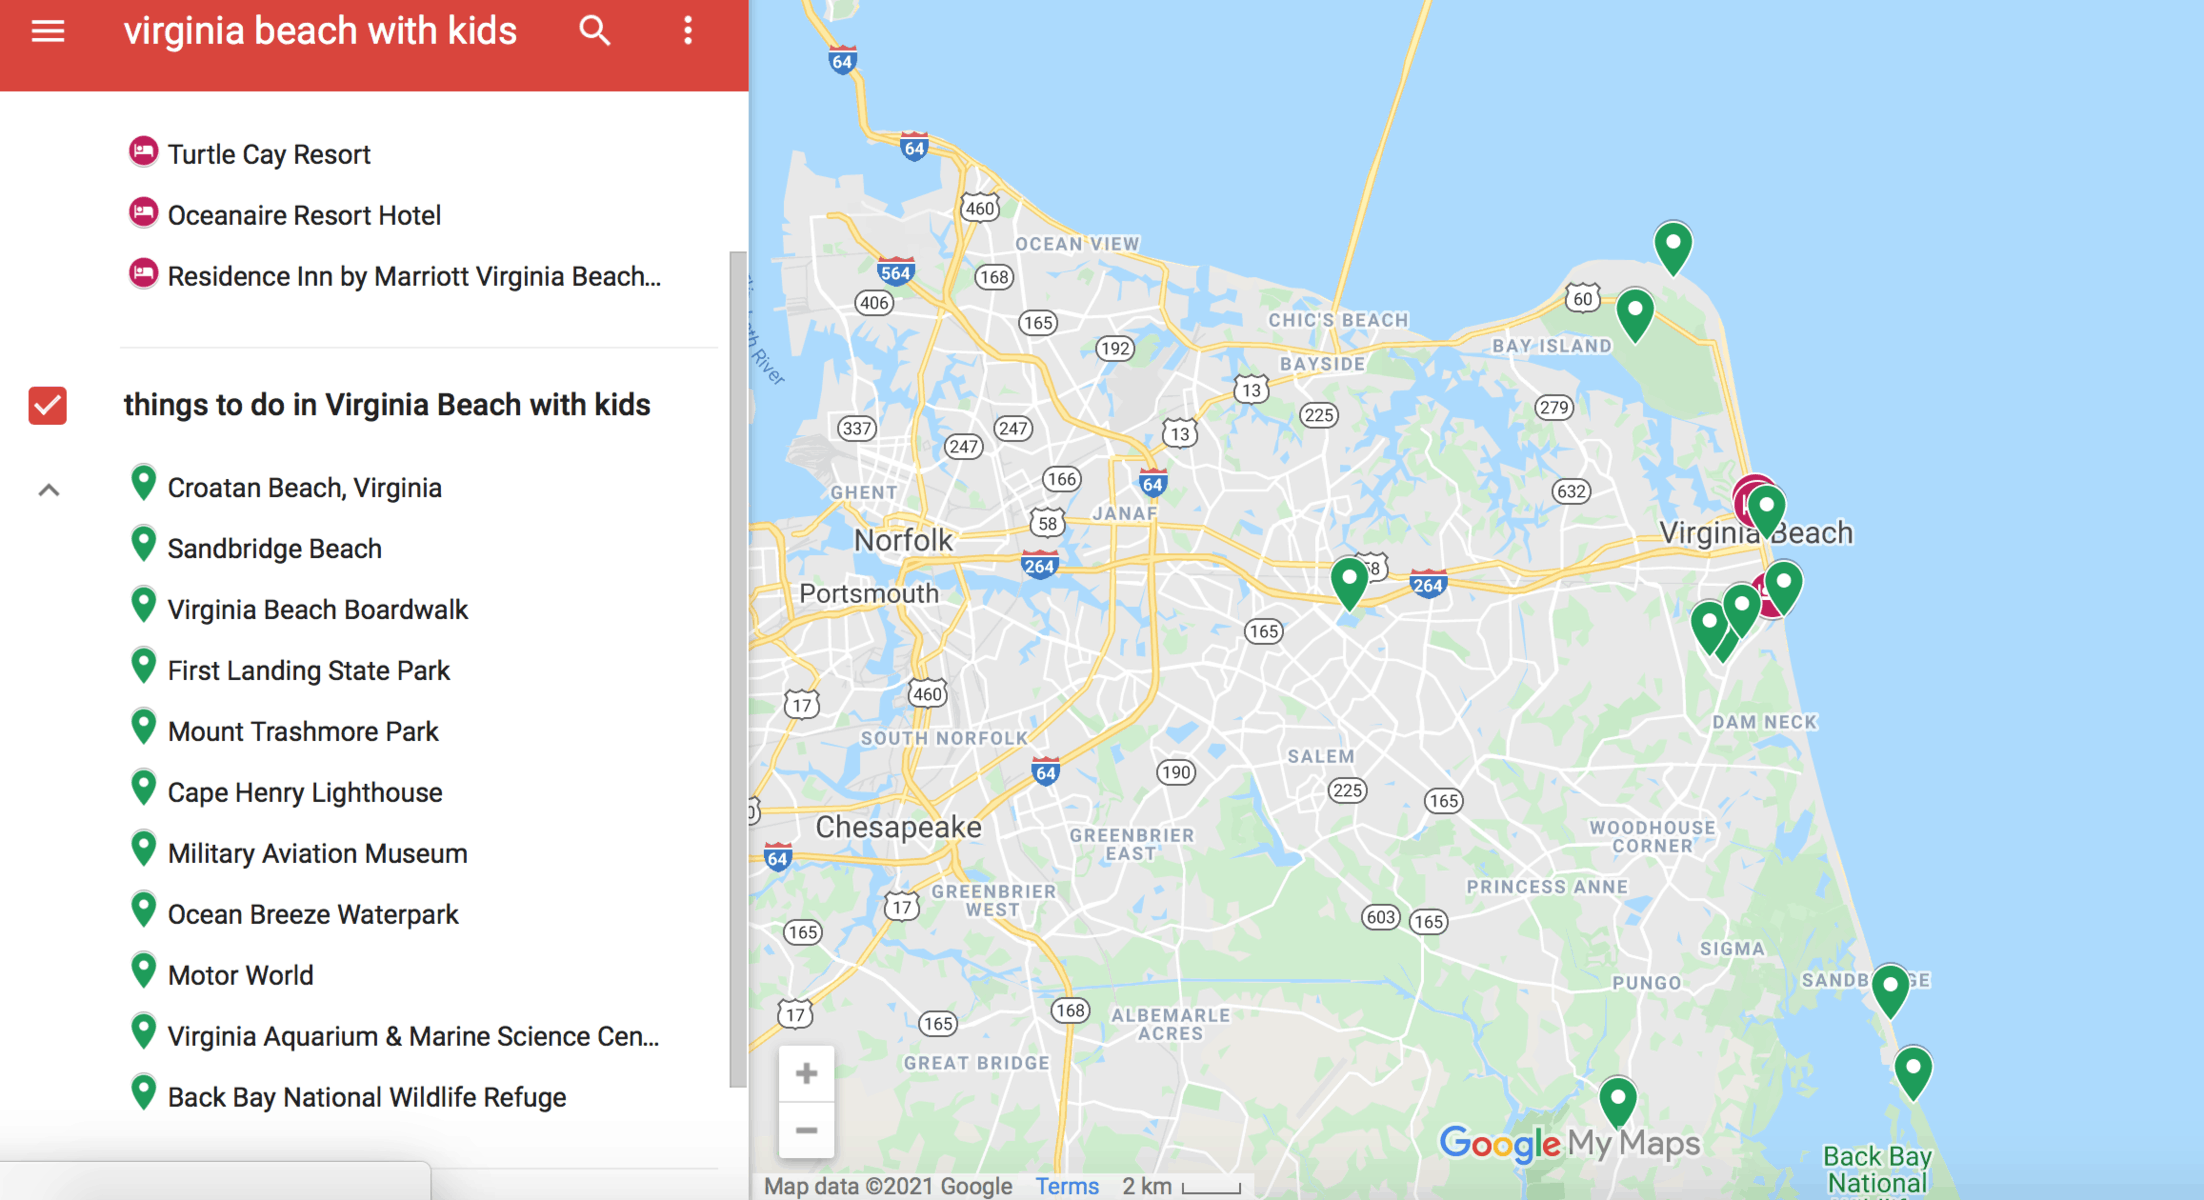 Map for Virginia Beach With Kids